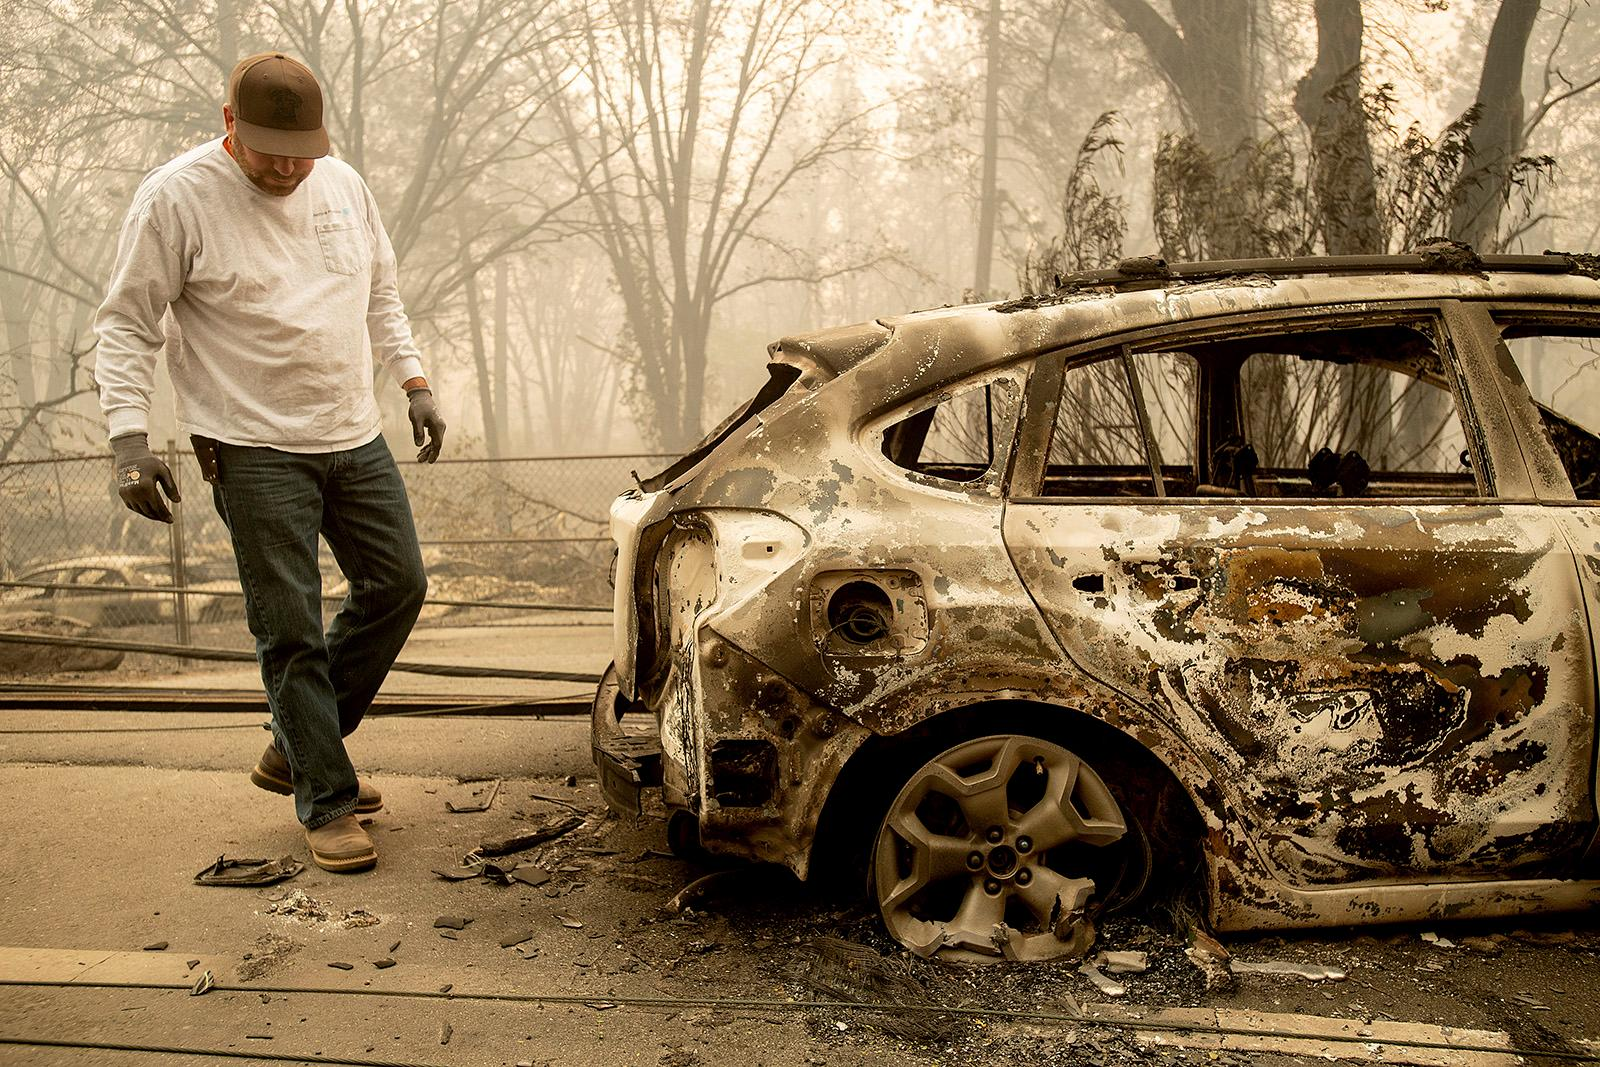 Eric England searches through a friend's vehicle on Pearson Rd. after the wildfire burned through Paradise, Calif., on Saturday, Nov. 10, 2018.  Not much is left in Paradise after a ferocious wildfire roared through the Northern California town as residents fled and entire neighborhoods are leveled. (AP Photo/Noah Berger)